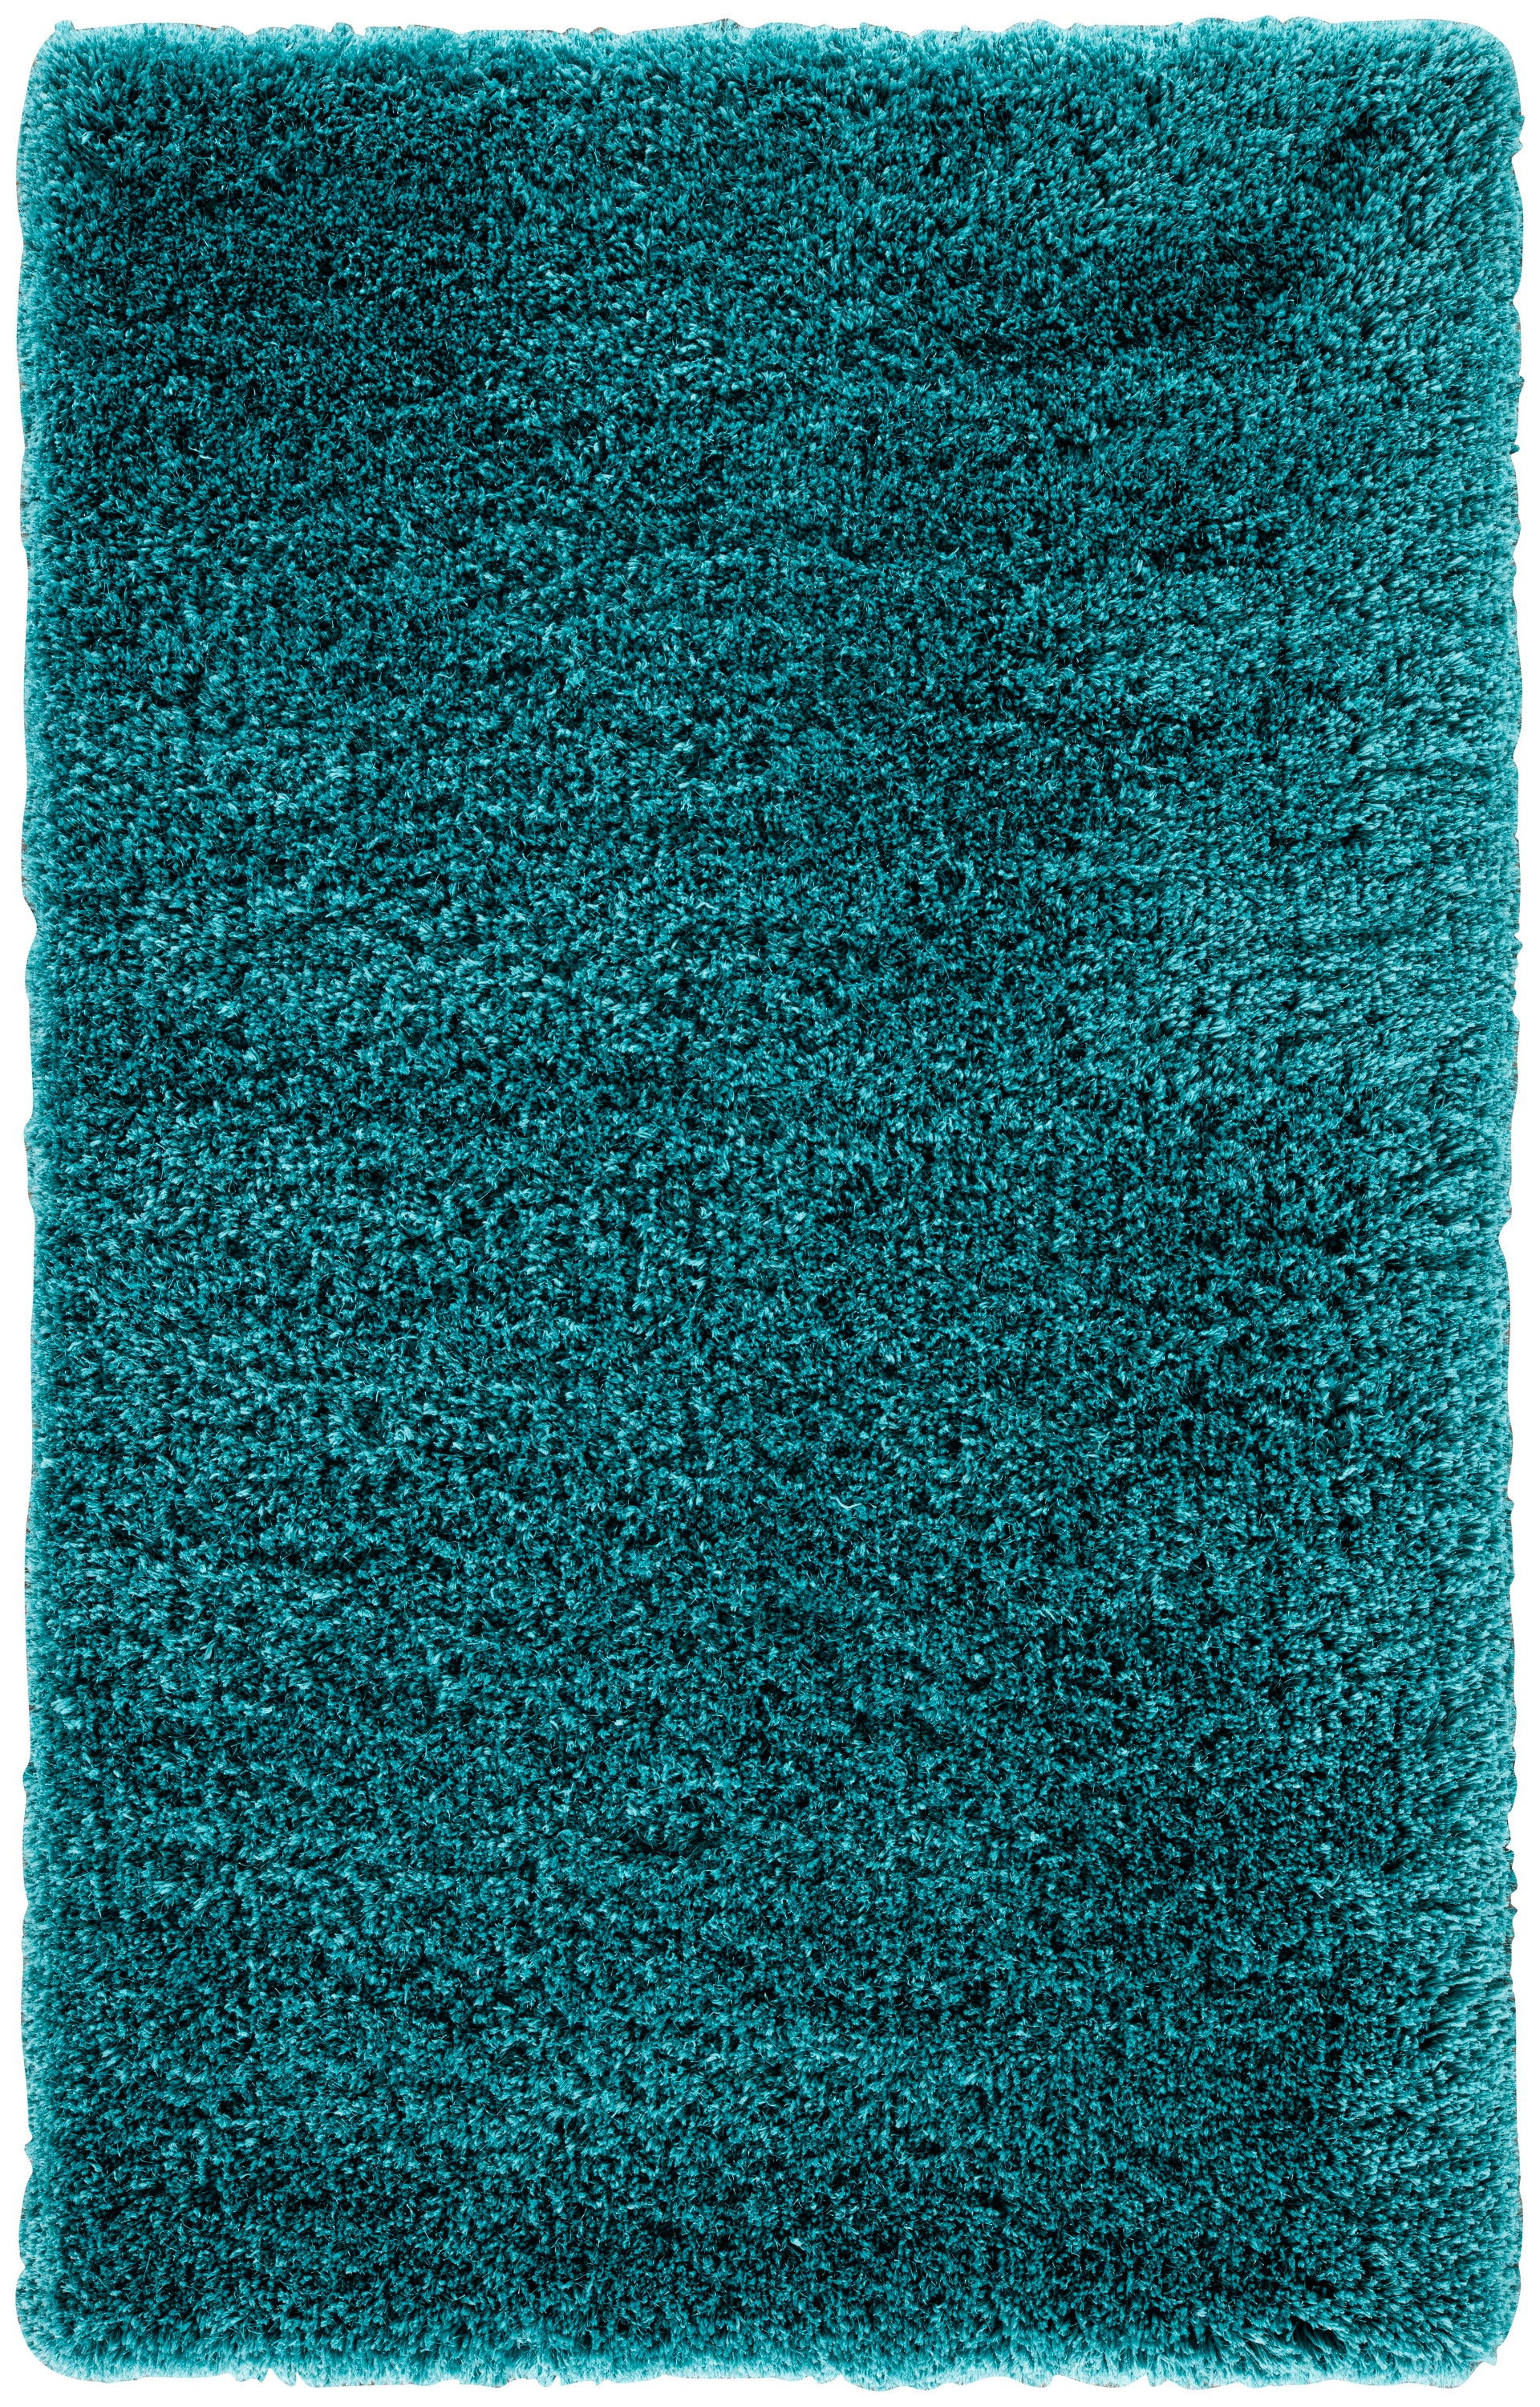 Rectangle Turquoise Solid Shag Synthetics Shag recommended for Bedroom, Bathroom, Dining Room, Office, Hallway, Living Room